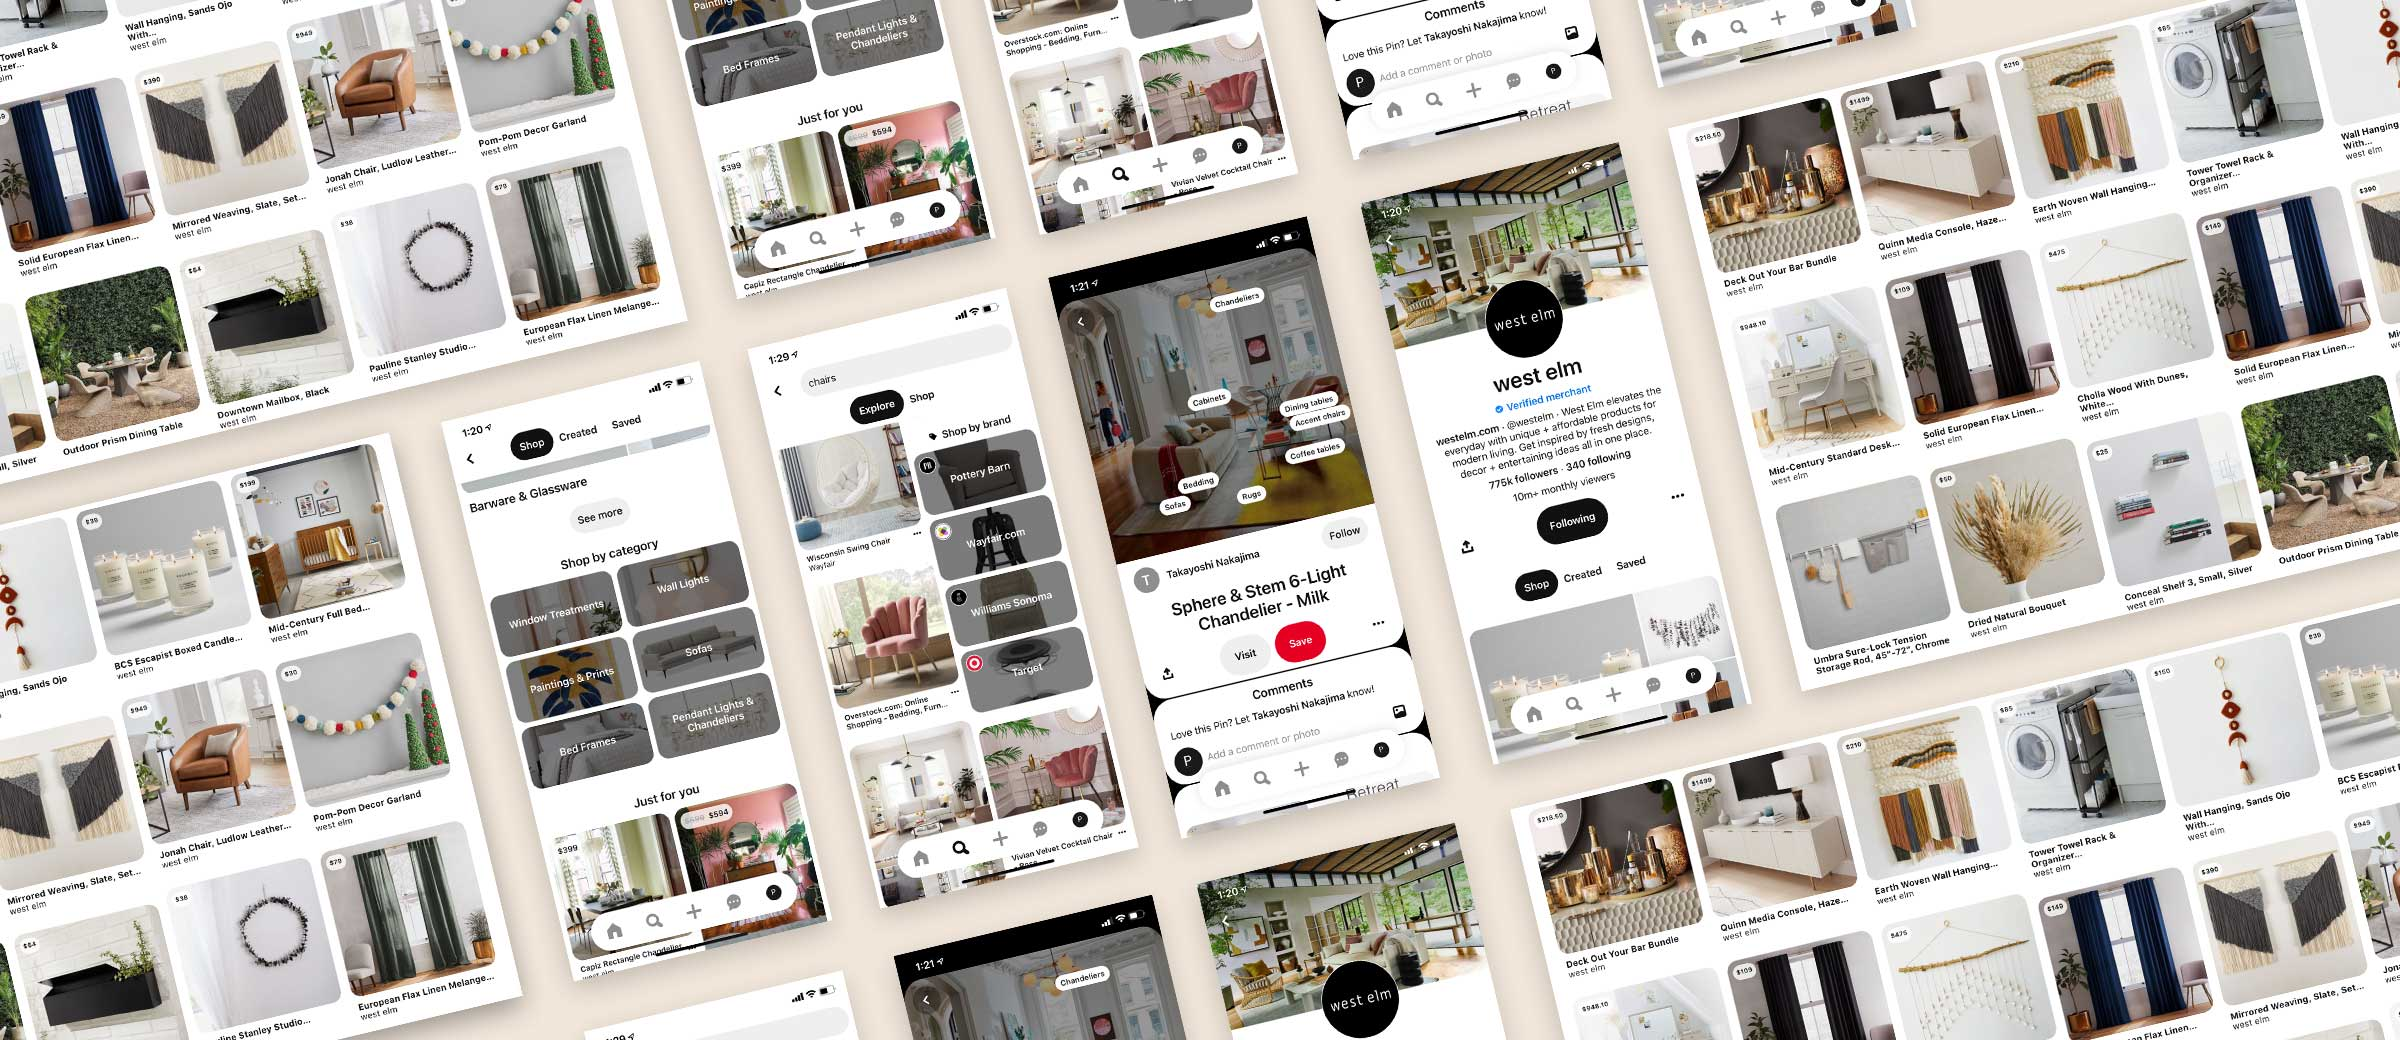 How Retailers Can Use Pinterest Shops to Drive Sales